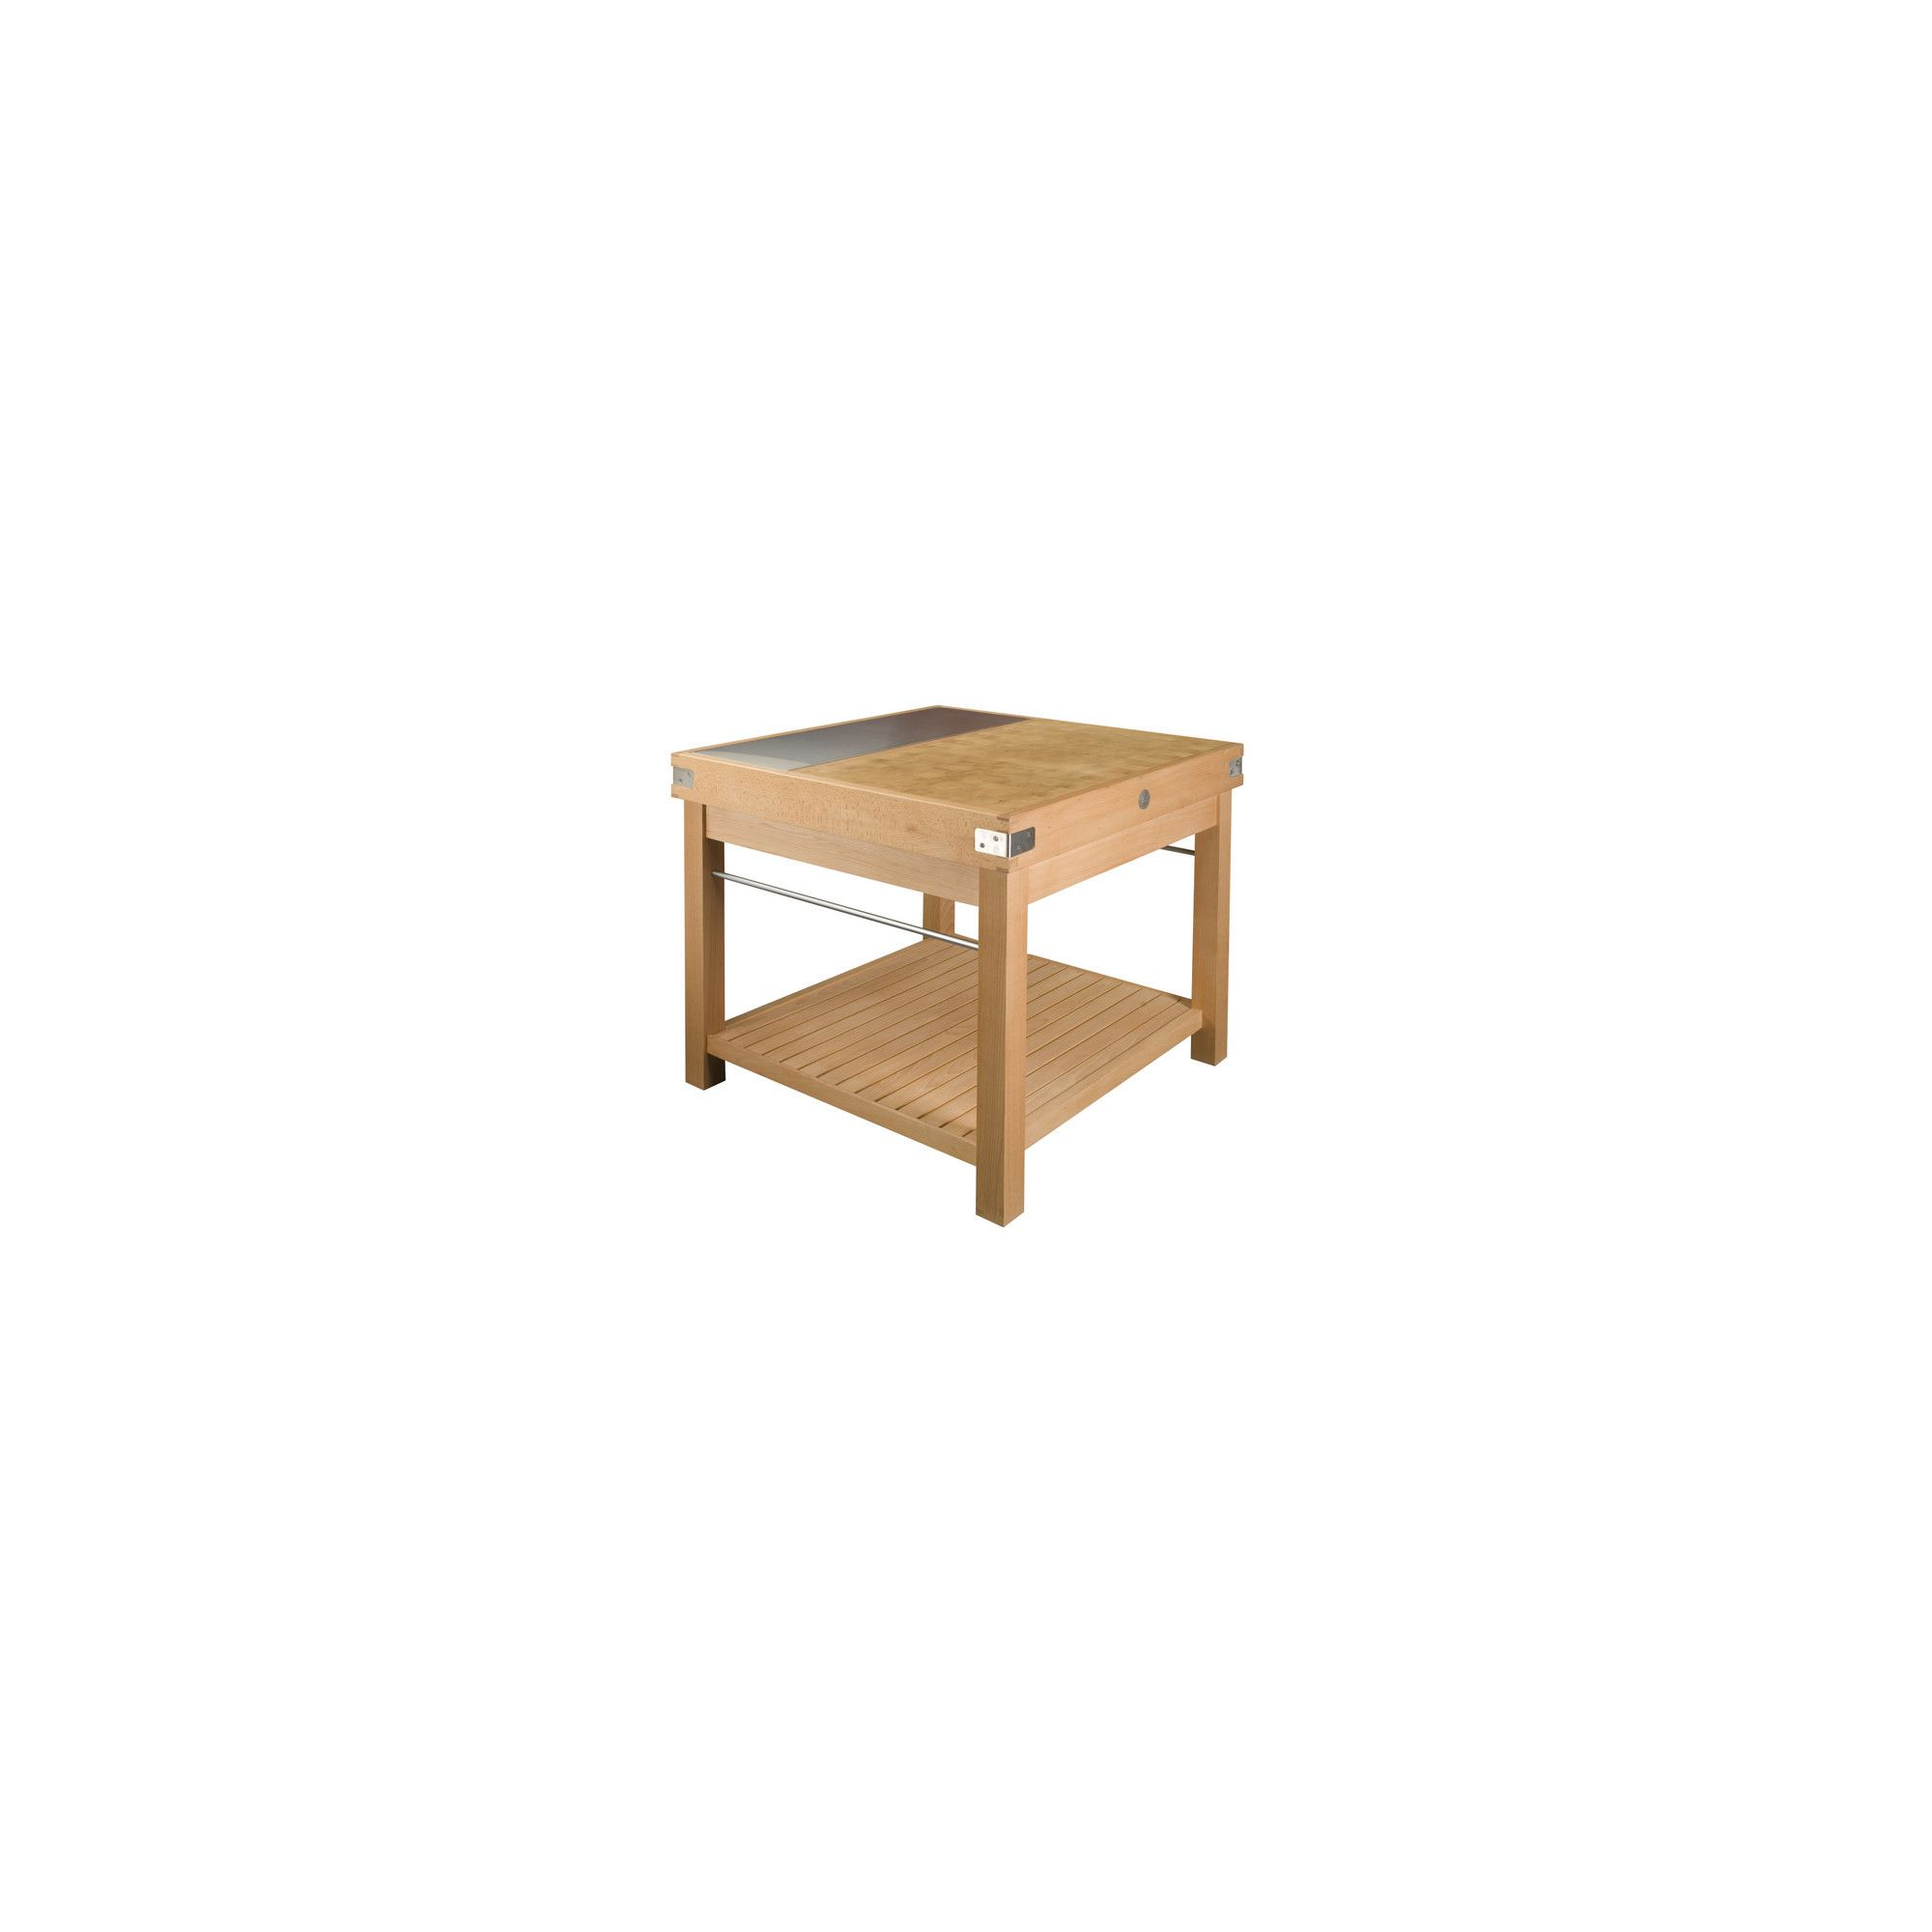 Chabret Kitchen Island Block - 85cm X 120cm X 120cm at Tescos Direct